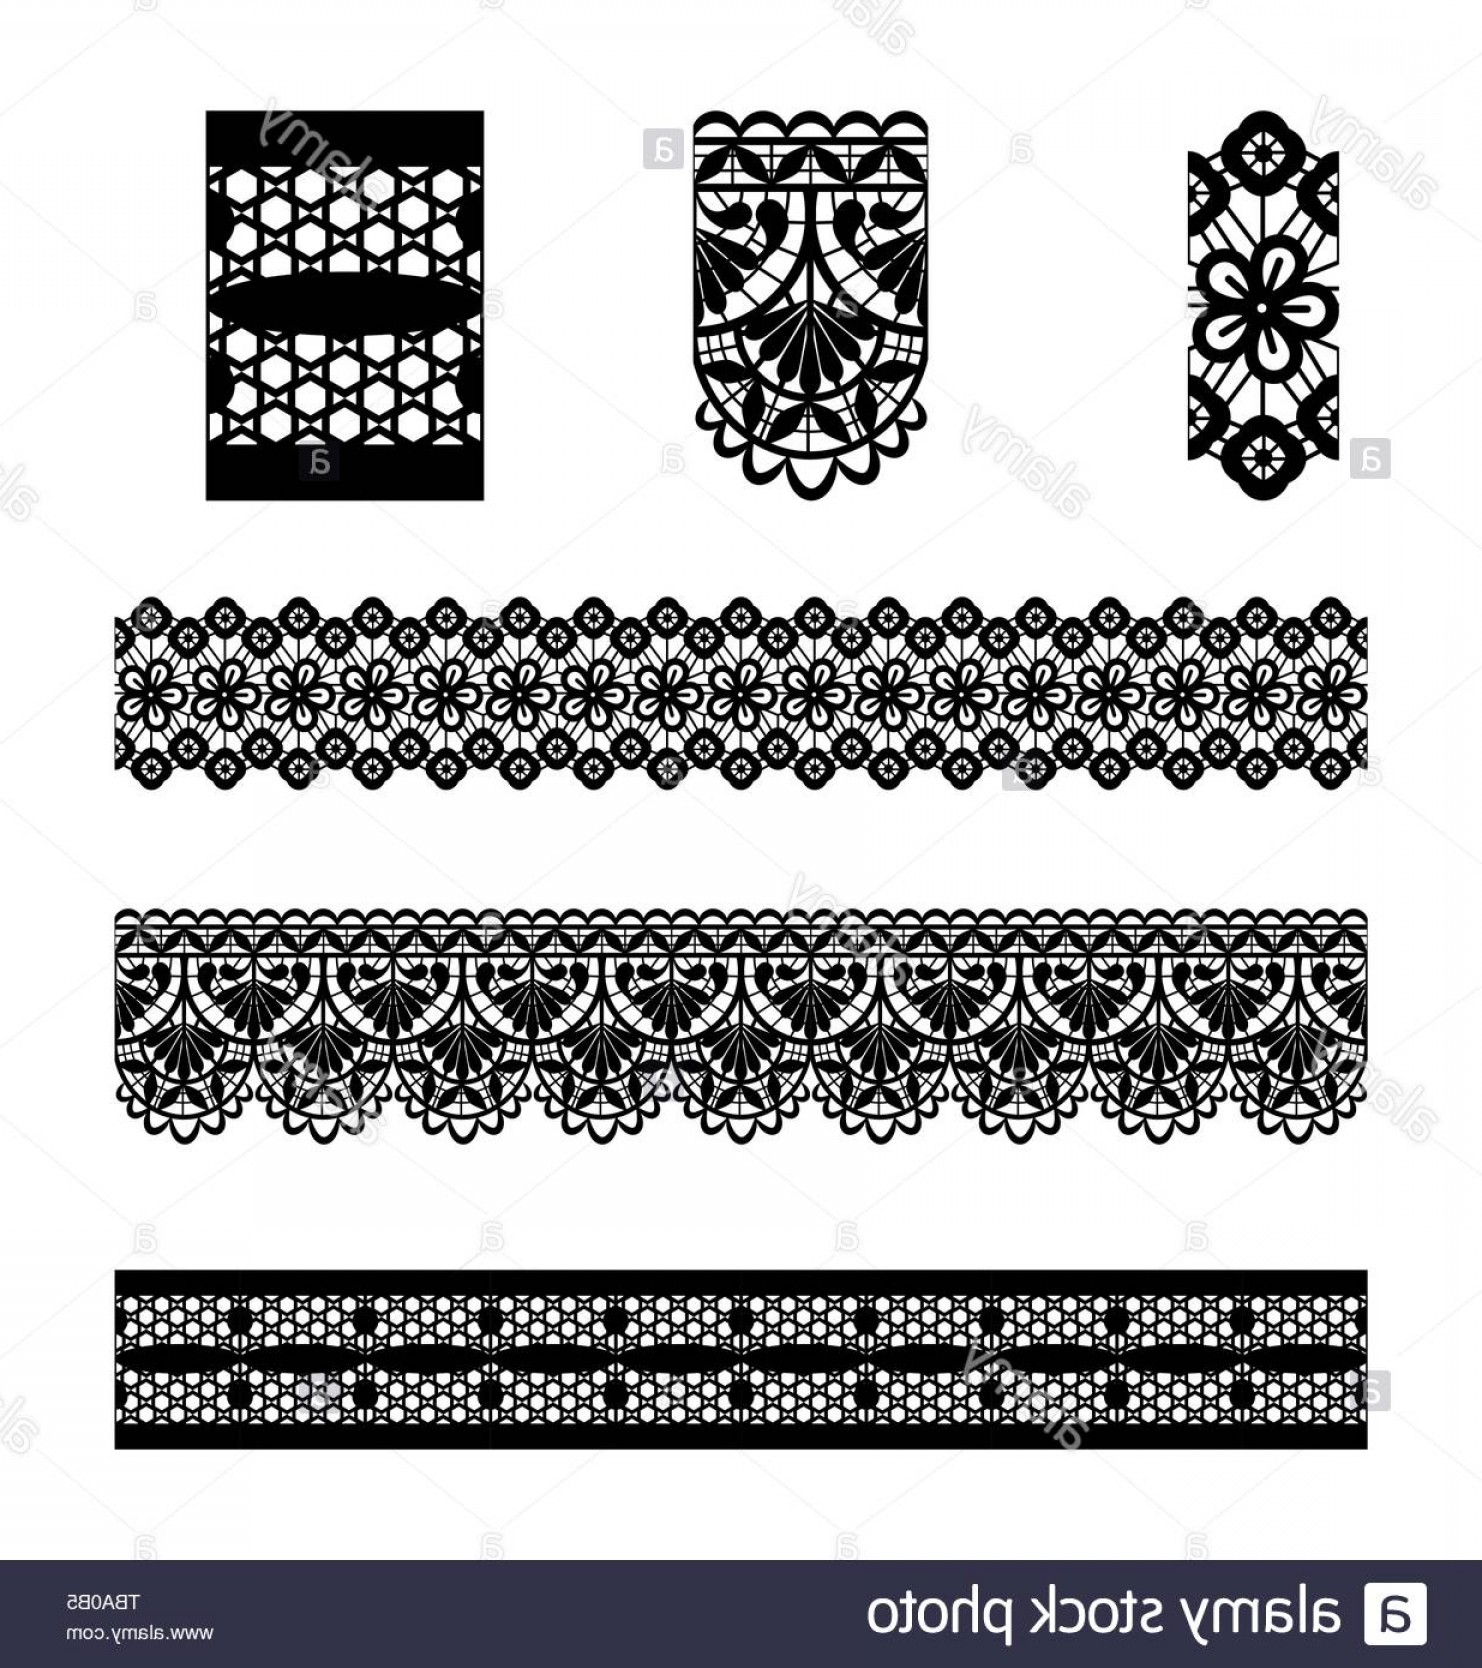 Vector Can Trim White: Trim Embroidery Lace And Elements Vector Illustration Image